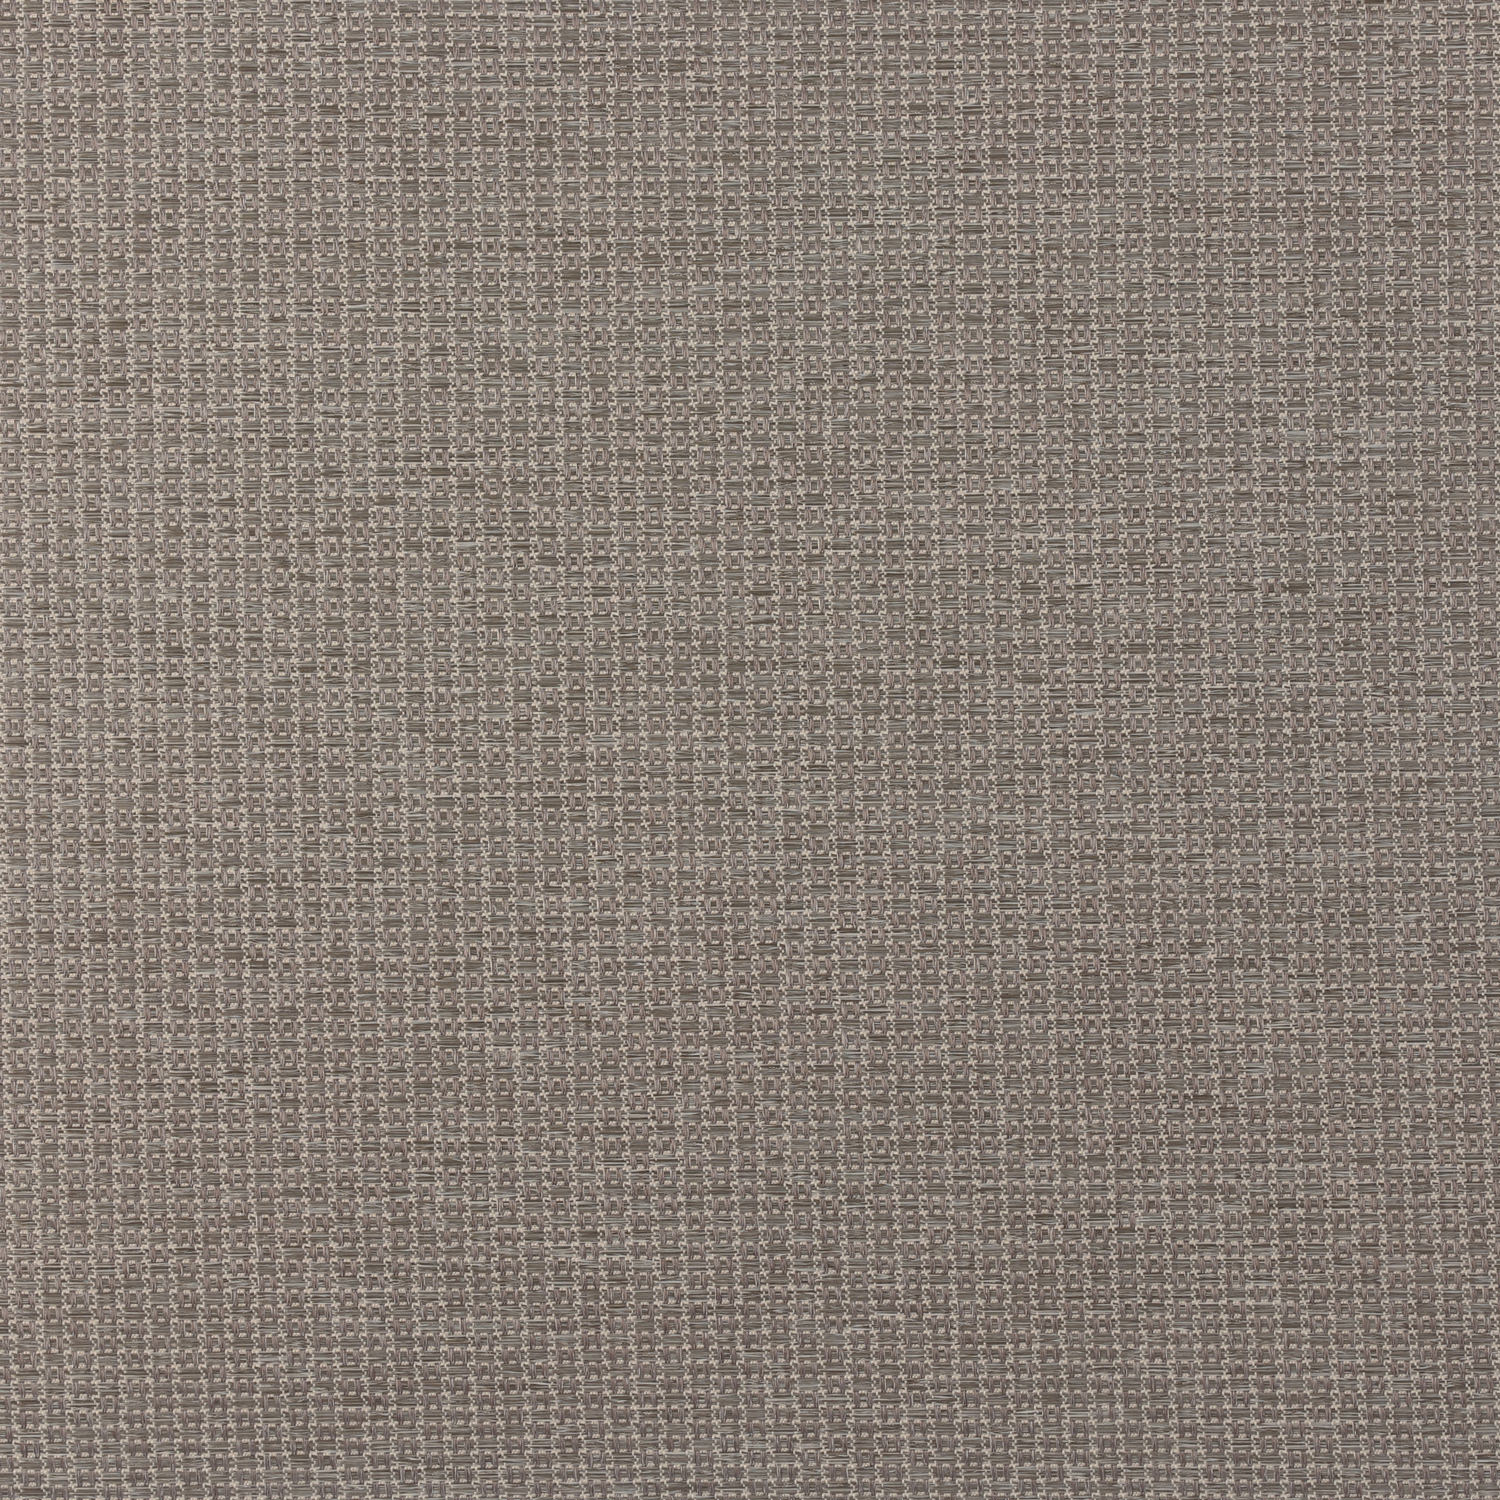 Rockland Brown BasketWeave Textured Blackout Roller Shade Swatch